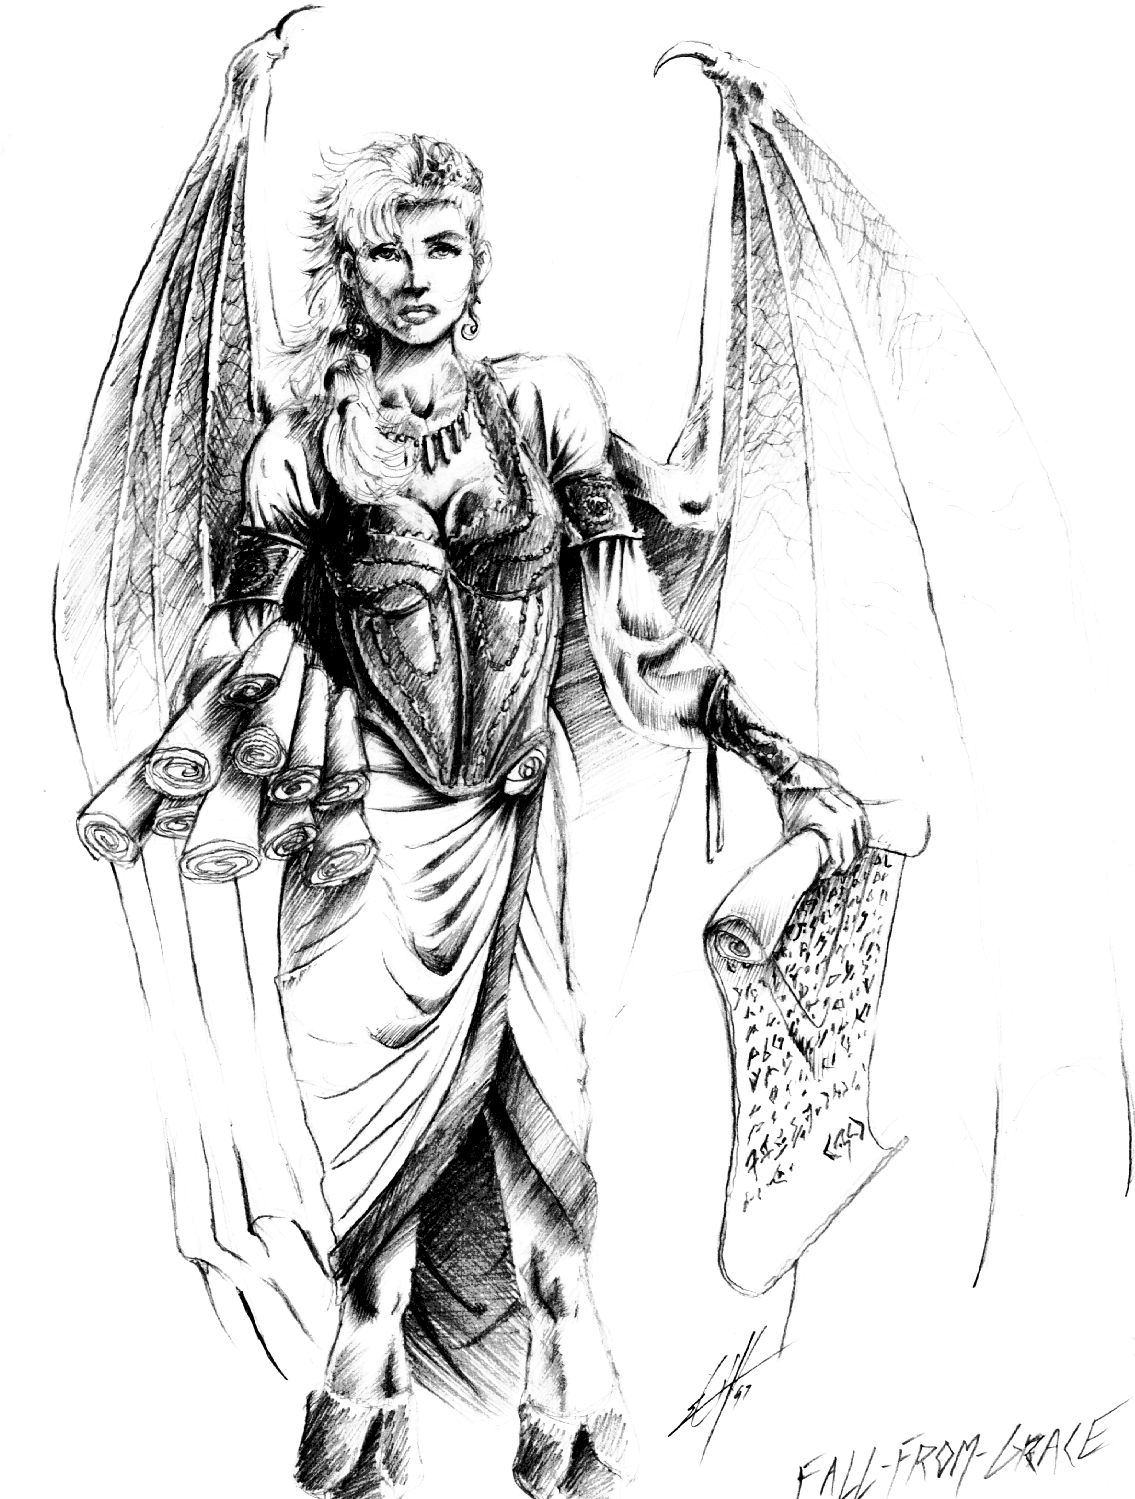 fall from grace succubus sketch Schizzo prepatatorio per Fall From Grace dei Sensisti Planescape: Torment (1999-12) © Black Isle, Wizards of the Coast e Hasbro